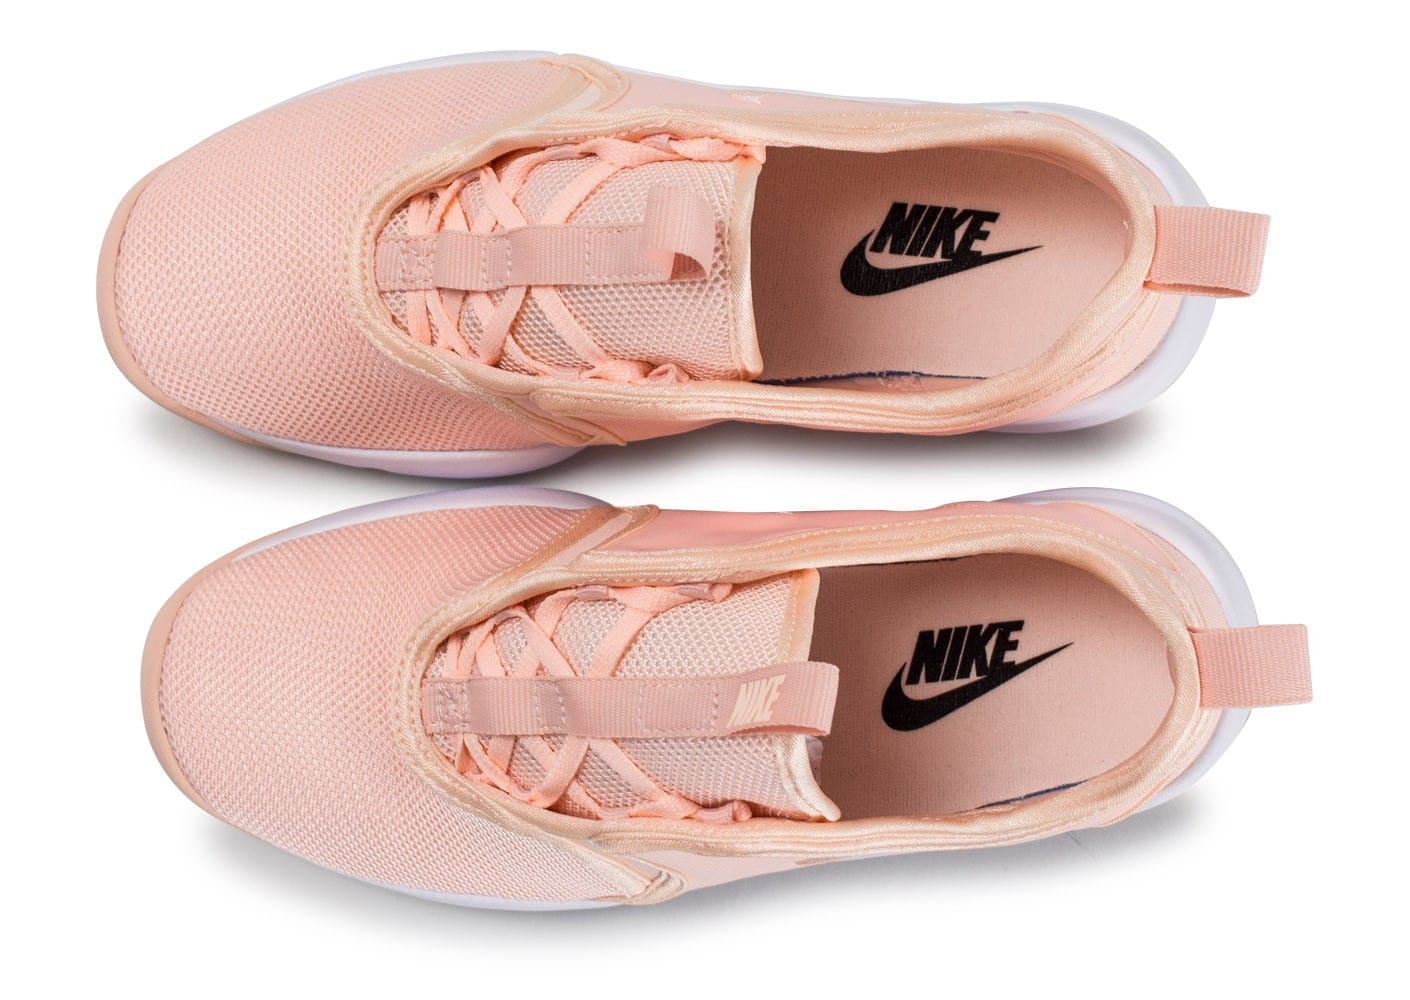 new concept 99188 77716 ... Chaussures Nike Loden W rose pale vue arrière ...